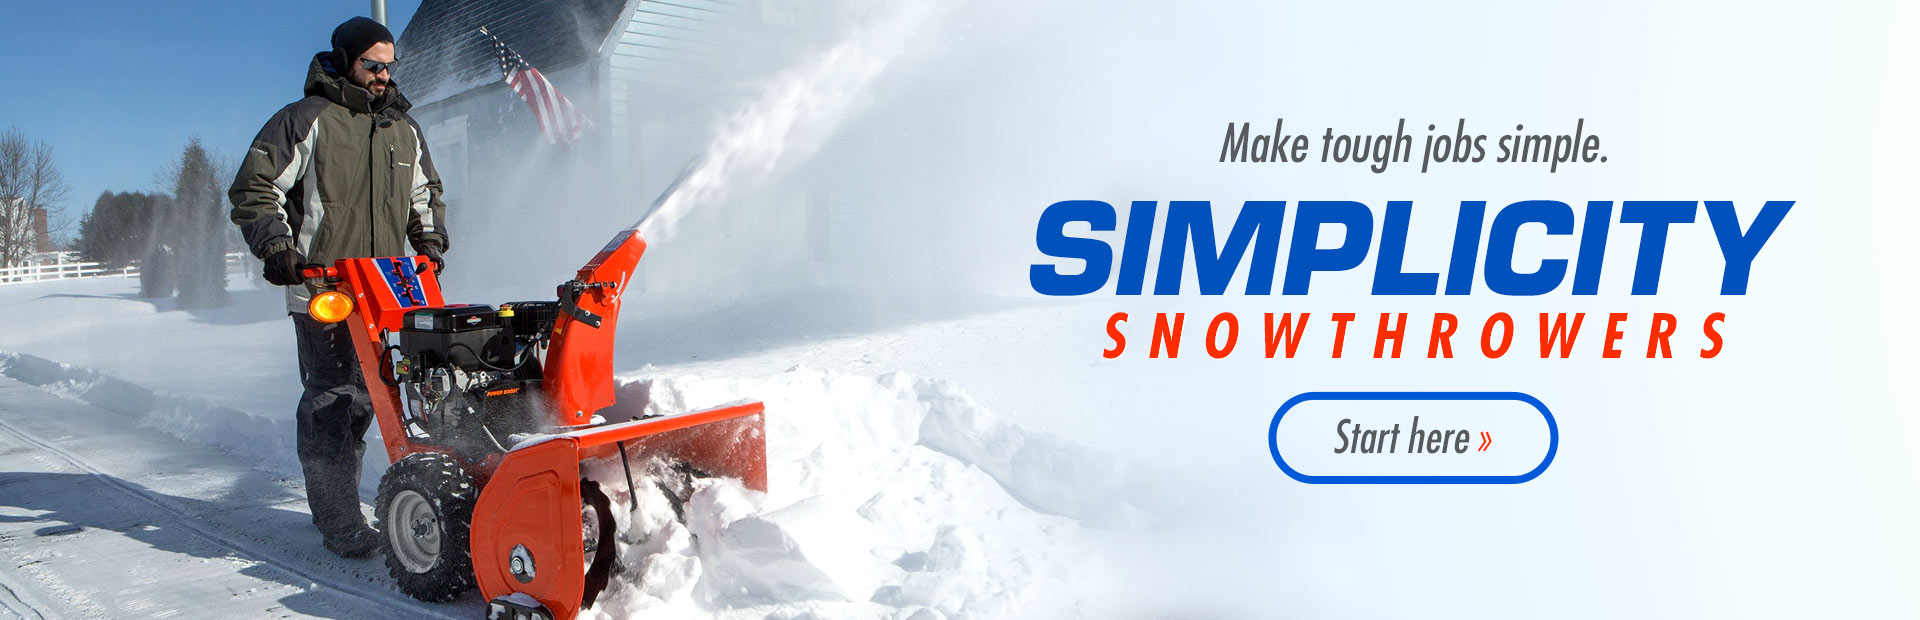 hight resolution of simplicity snowthrowers